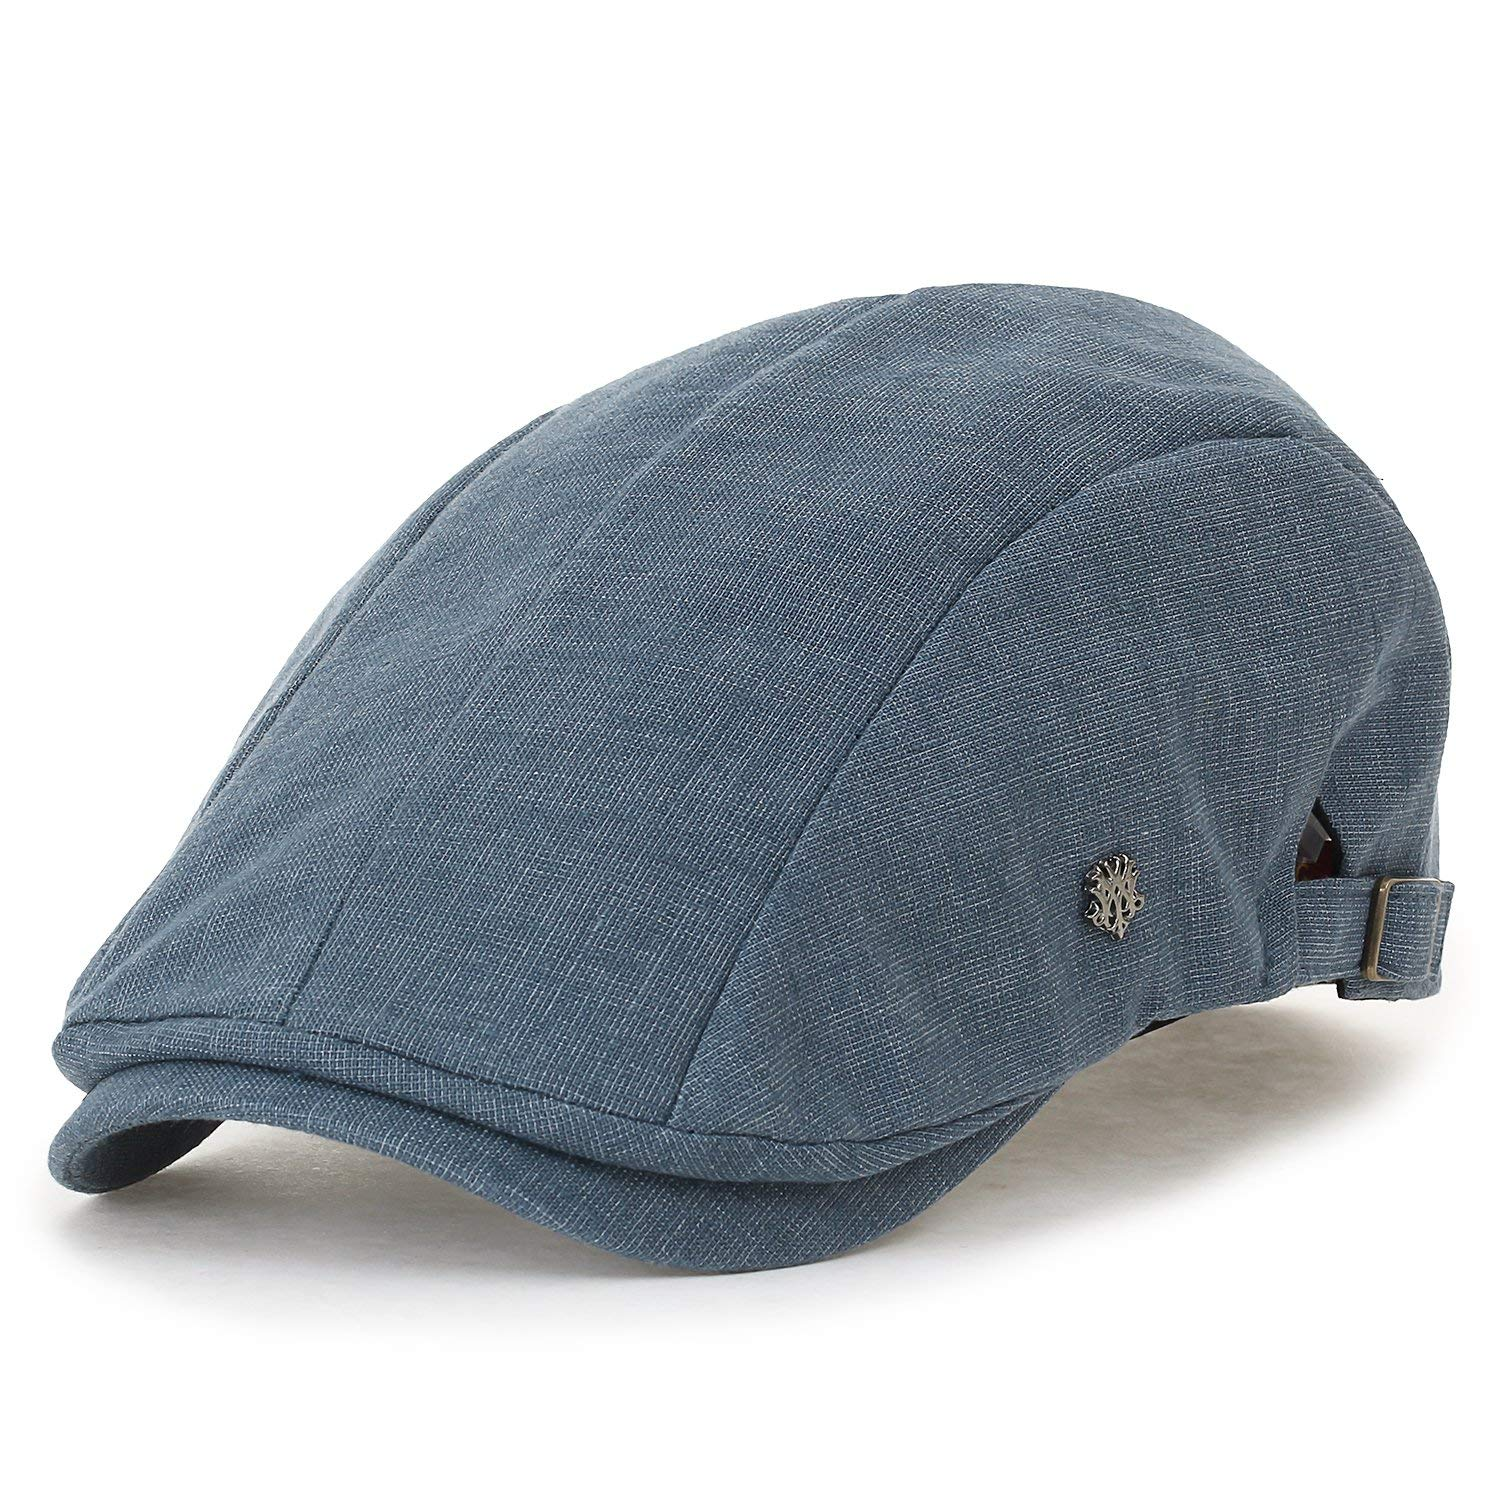 a35aa033a8c Get Quotations · ililily Linen Panel Gatsby Newsboy Hat Side Strap Cabbie  Hunting Flat Cap